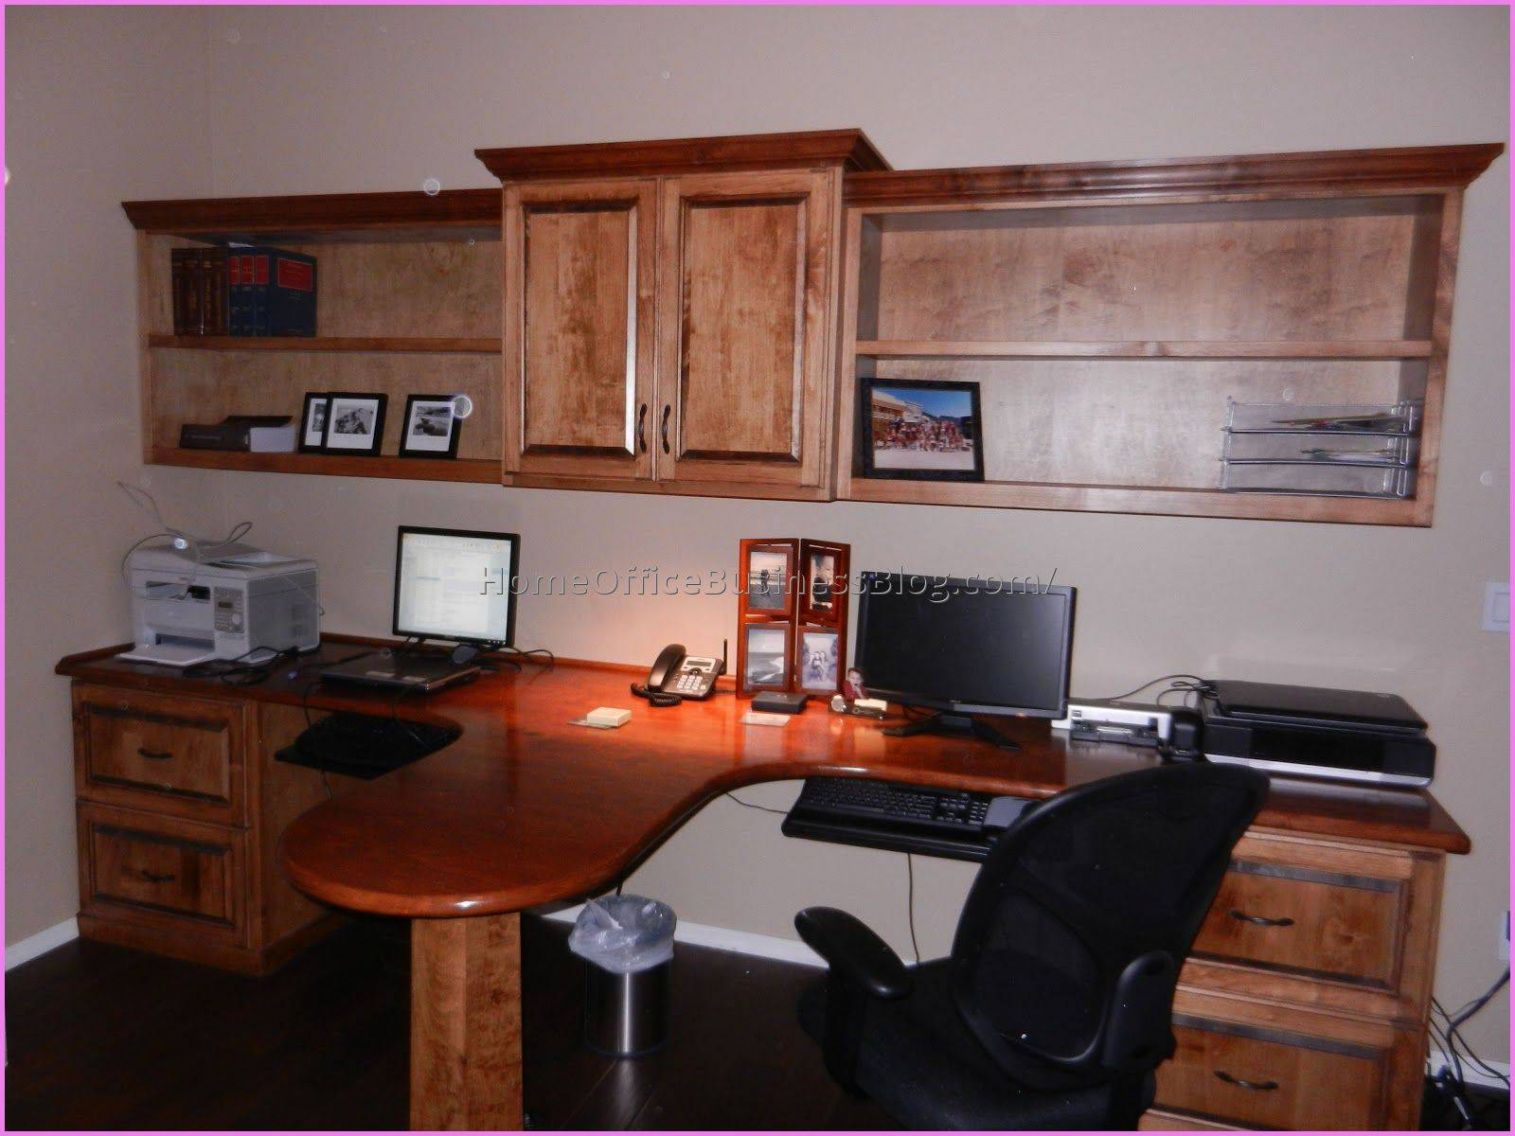 2 Person Desk Home Office Furniture Set Check More At Http